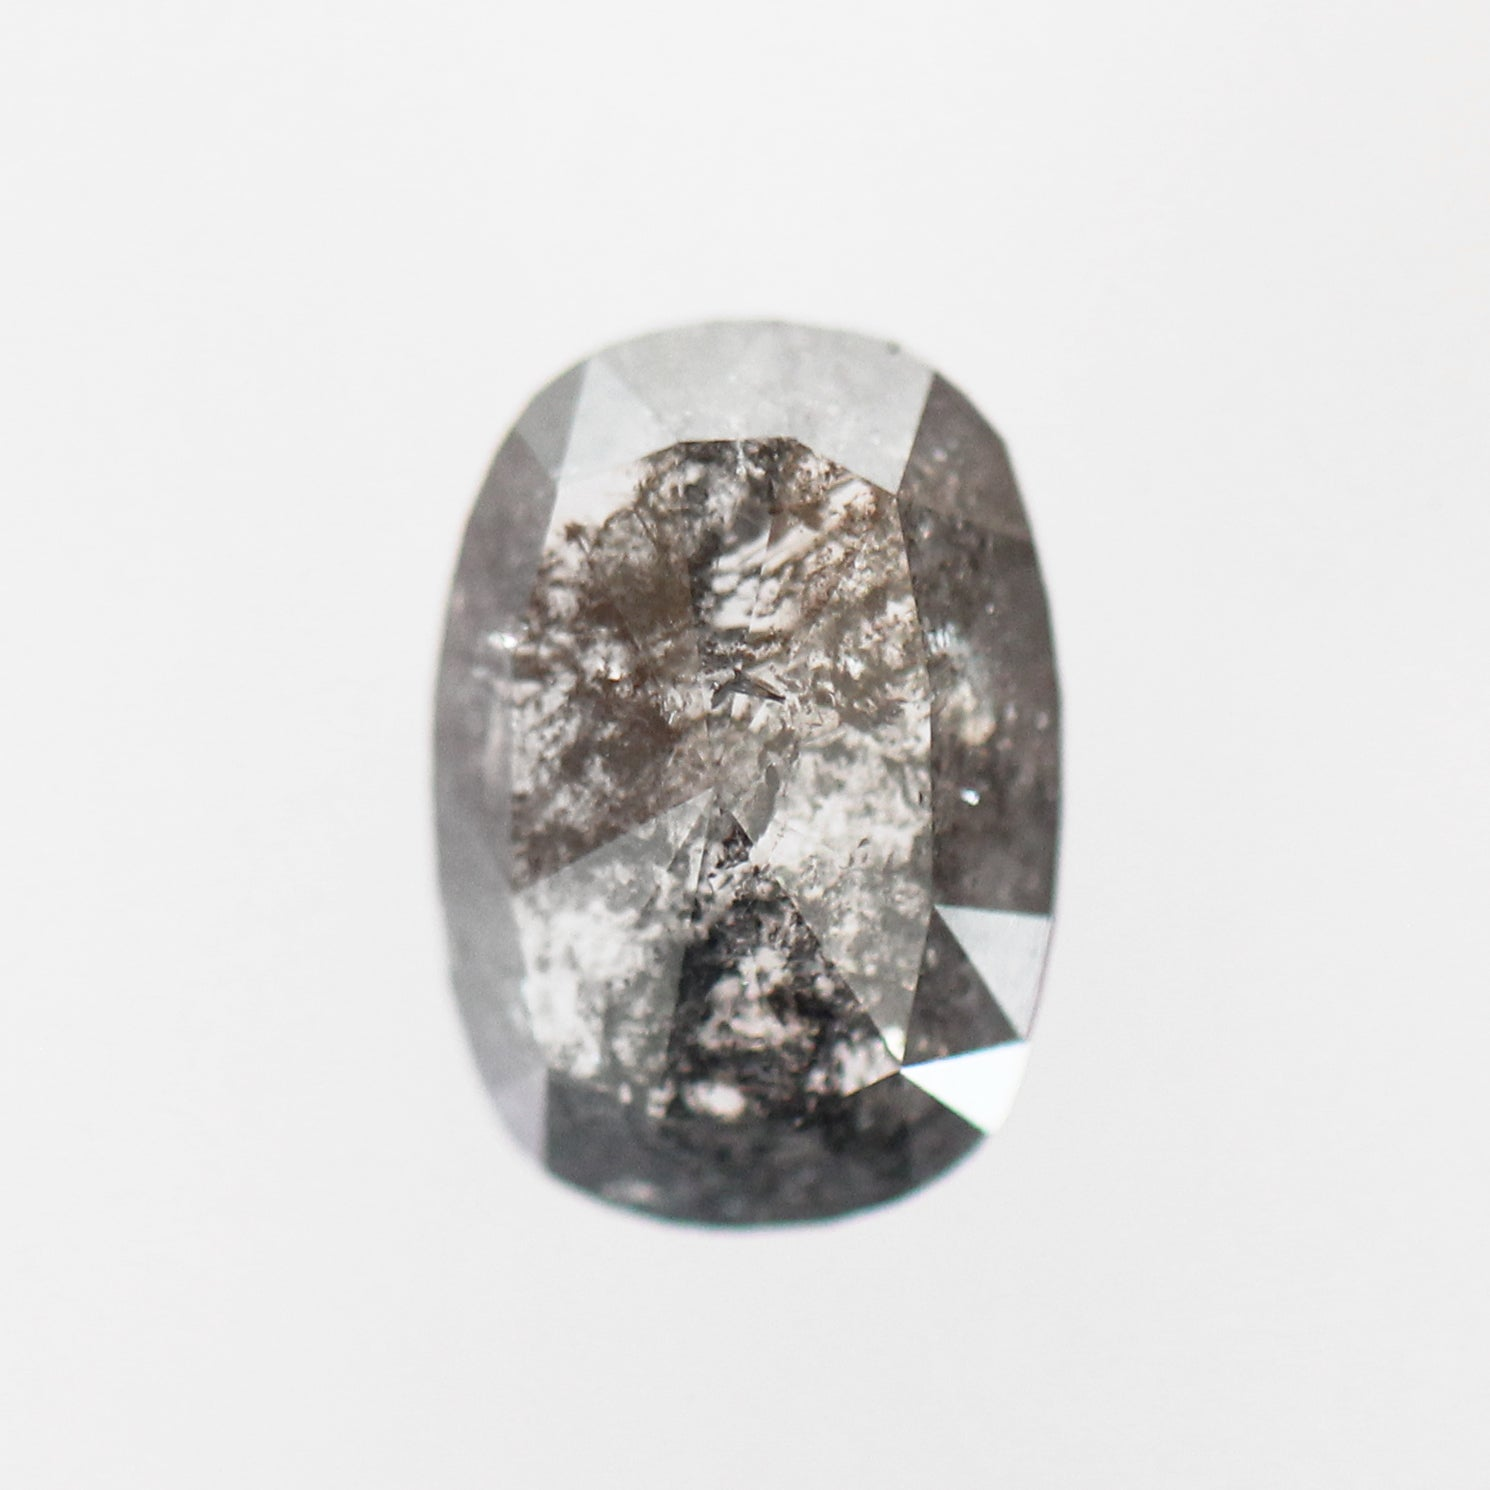 2.29ct Rose Cut Oval Celestial Diamond® for Custom Work - Inventory Code ORD229 - Celestial Diamonds ® by Midwinter Co.